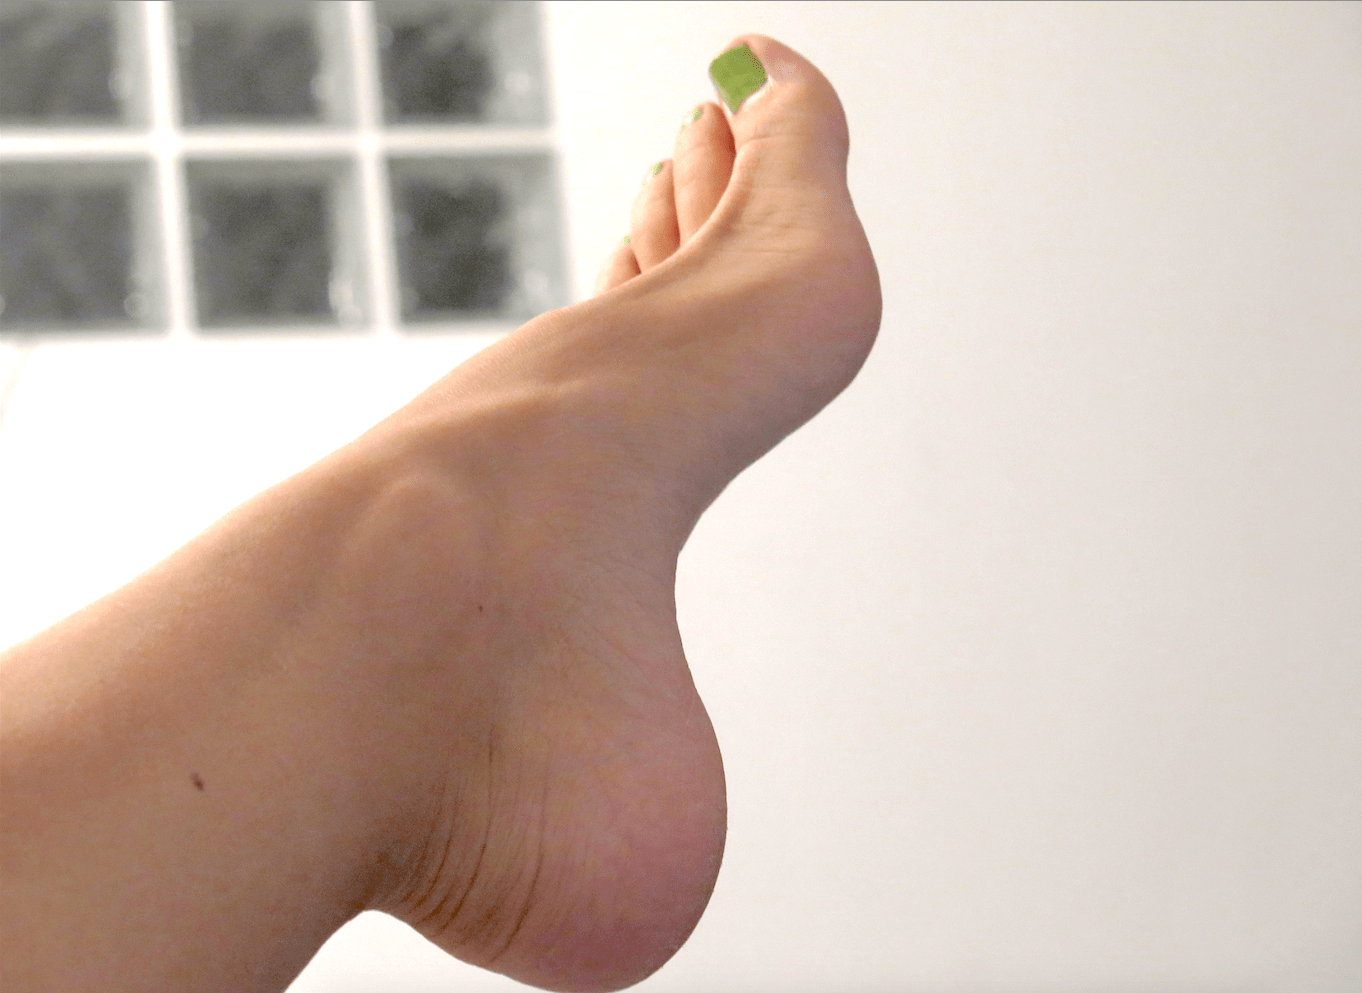 barefeet #nailpolish #green beautiful #foot #profile | myself